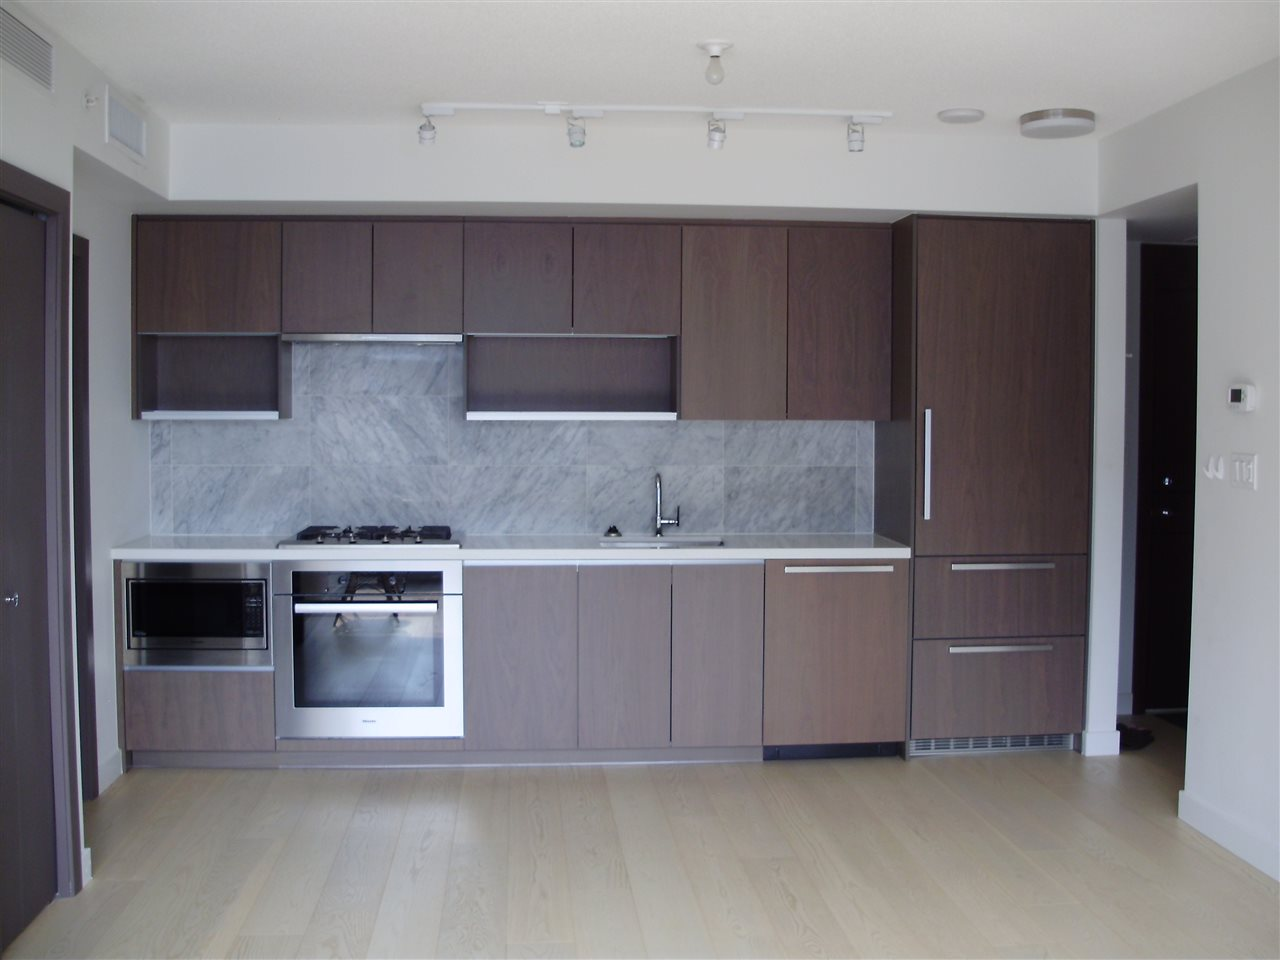 Condo Apartment at 1851 38 SMITHE STREET, Unit 1851, Vancouver West, British Columbia. Image 4